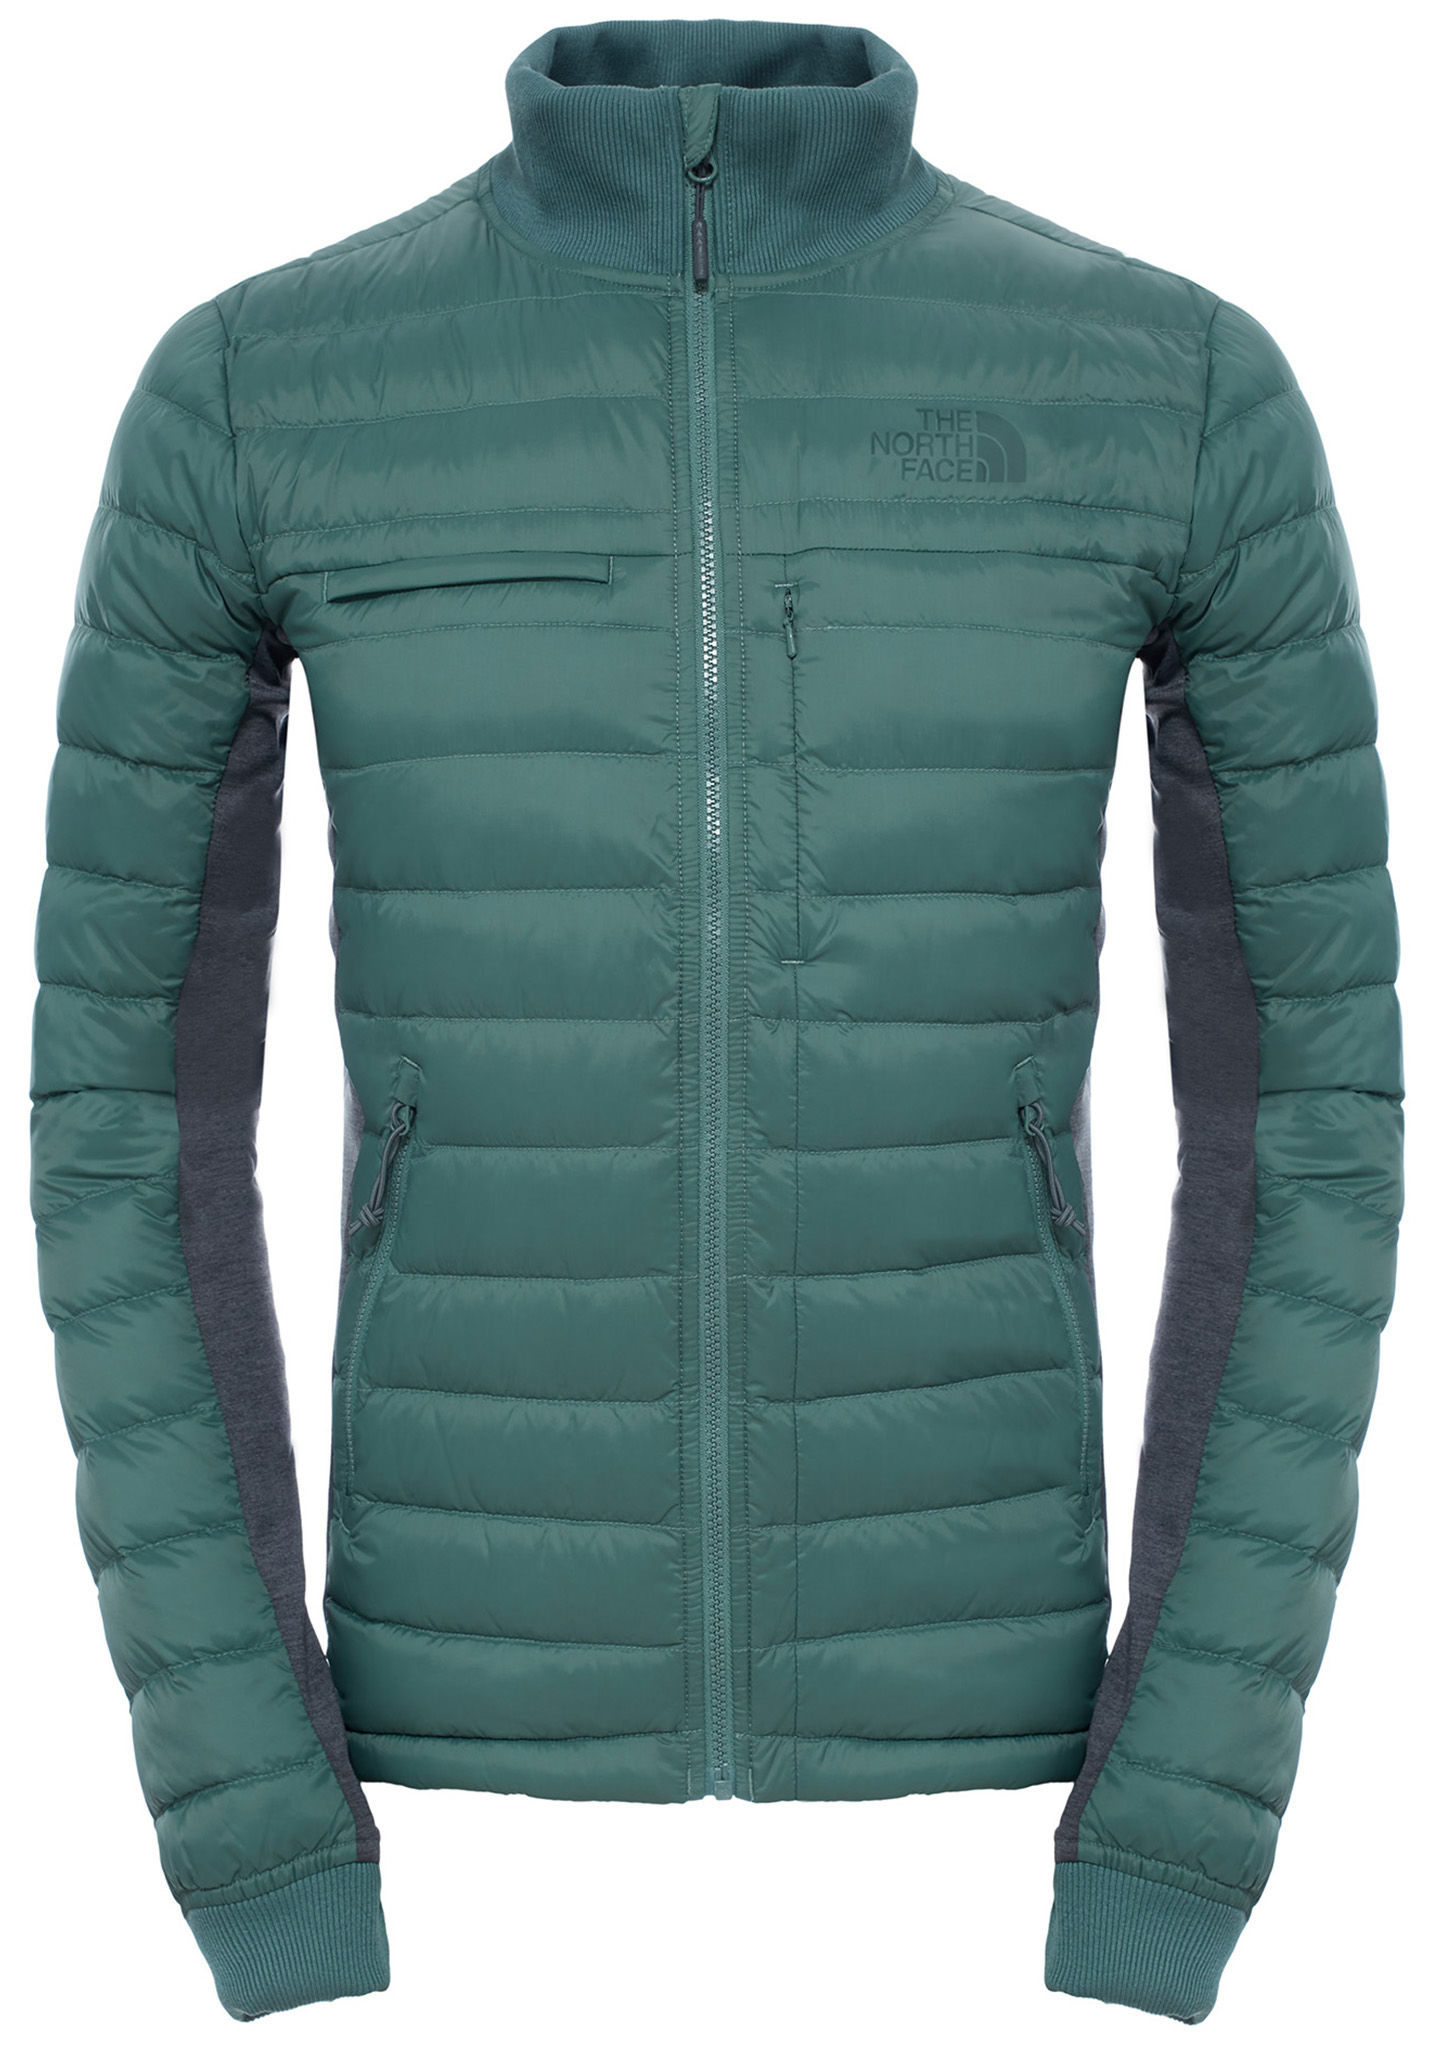 e9b94cdd5940 THE NORTH FACE Denali Crimpt - Functional Jacket for Men - Green - Planet  Sports